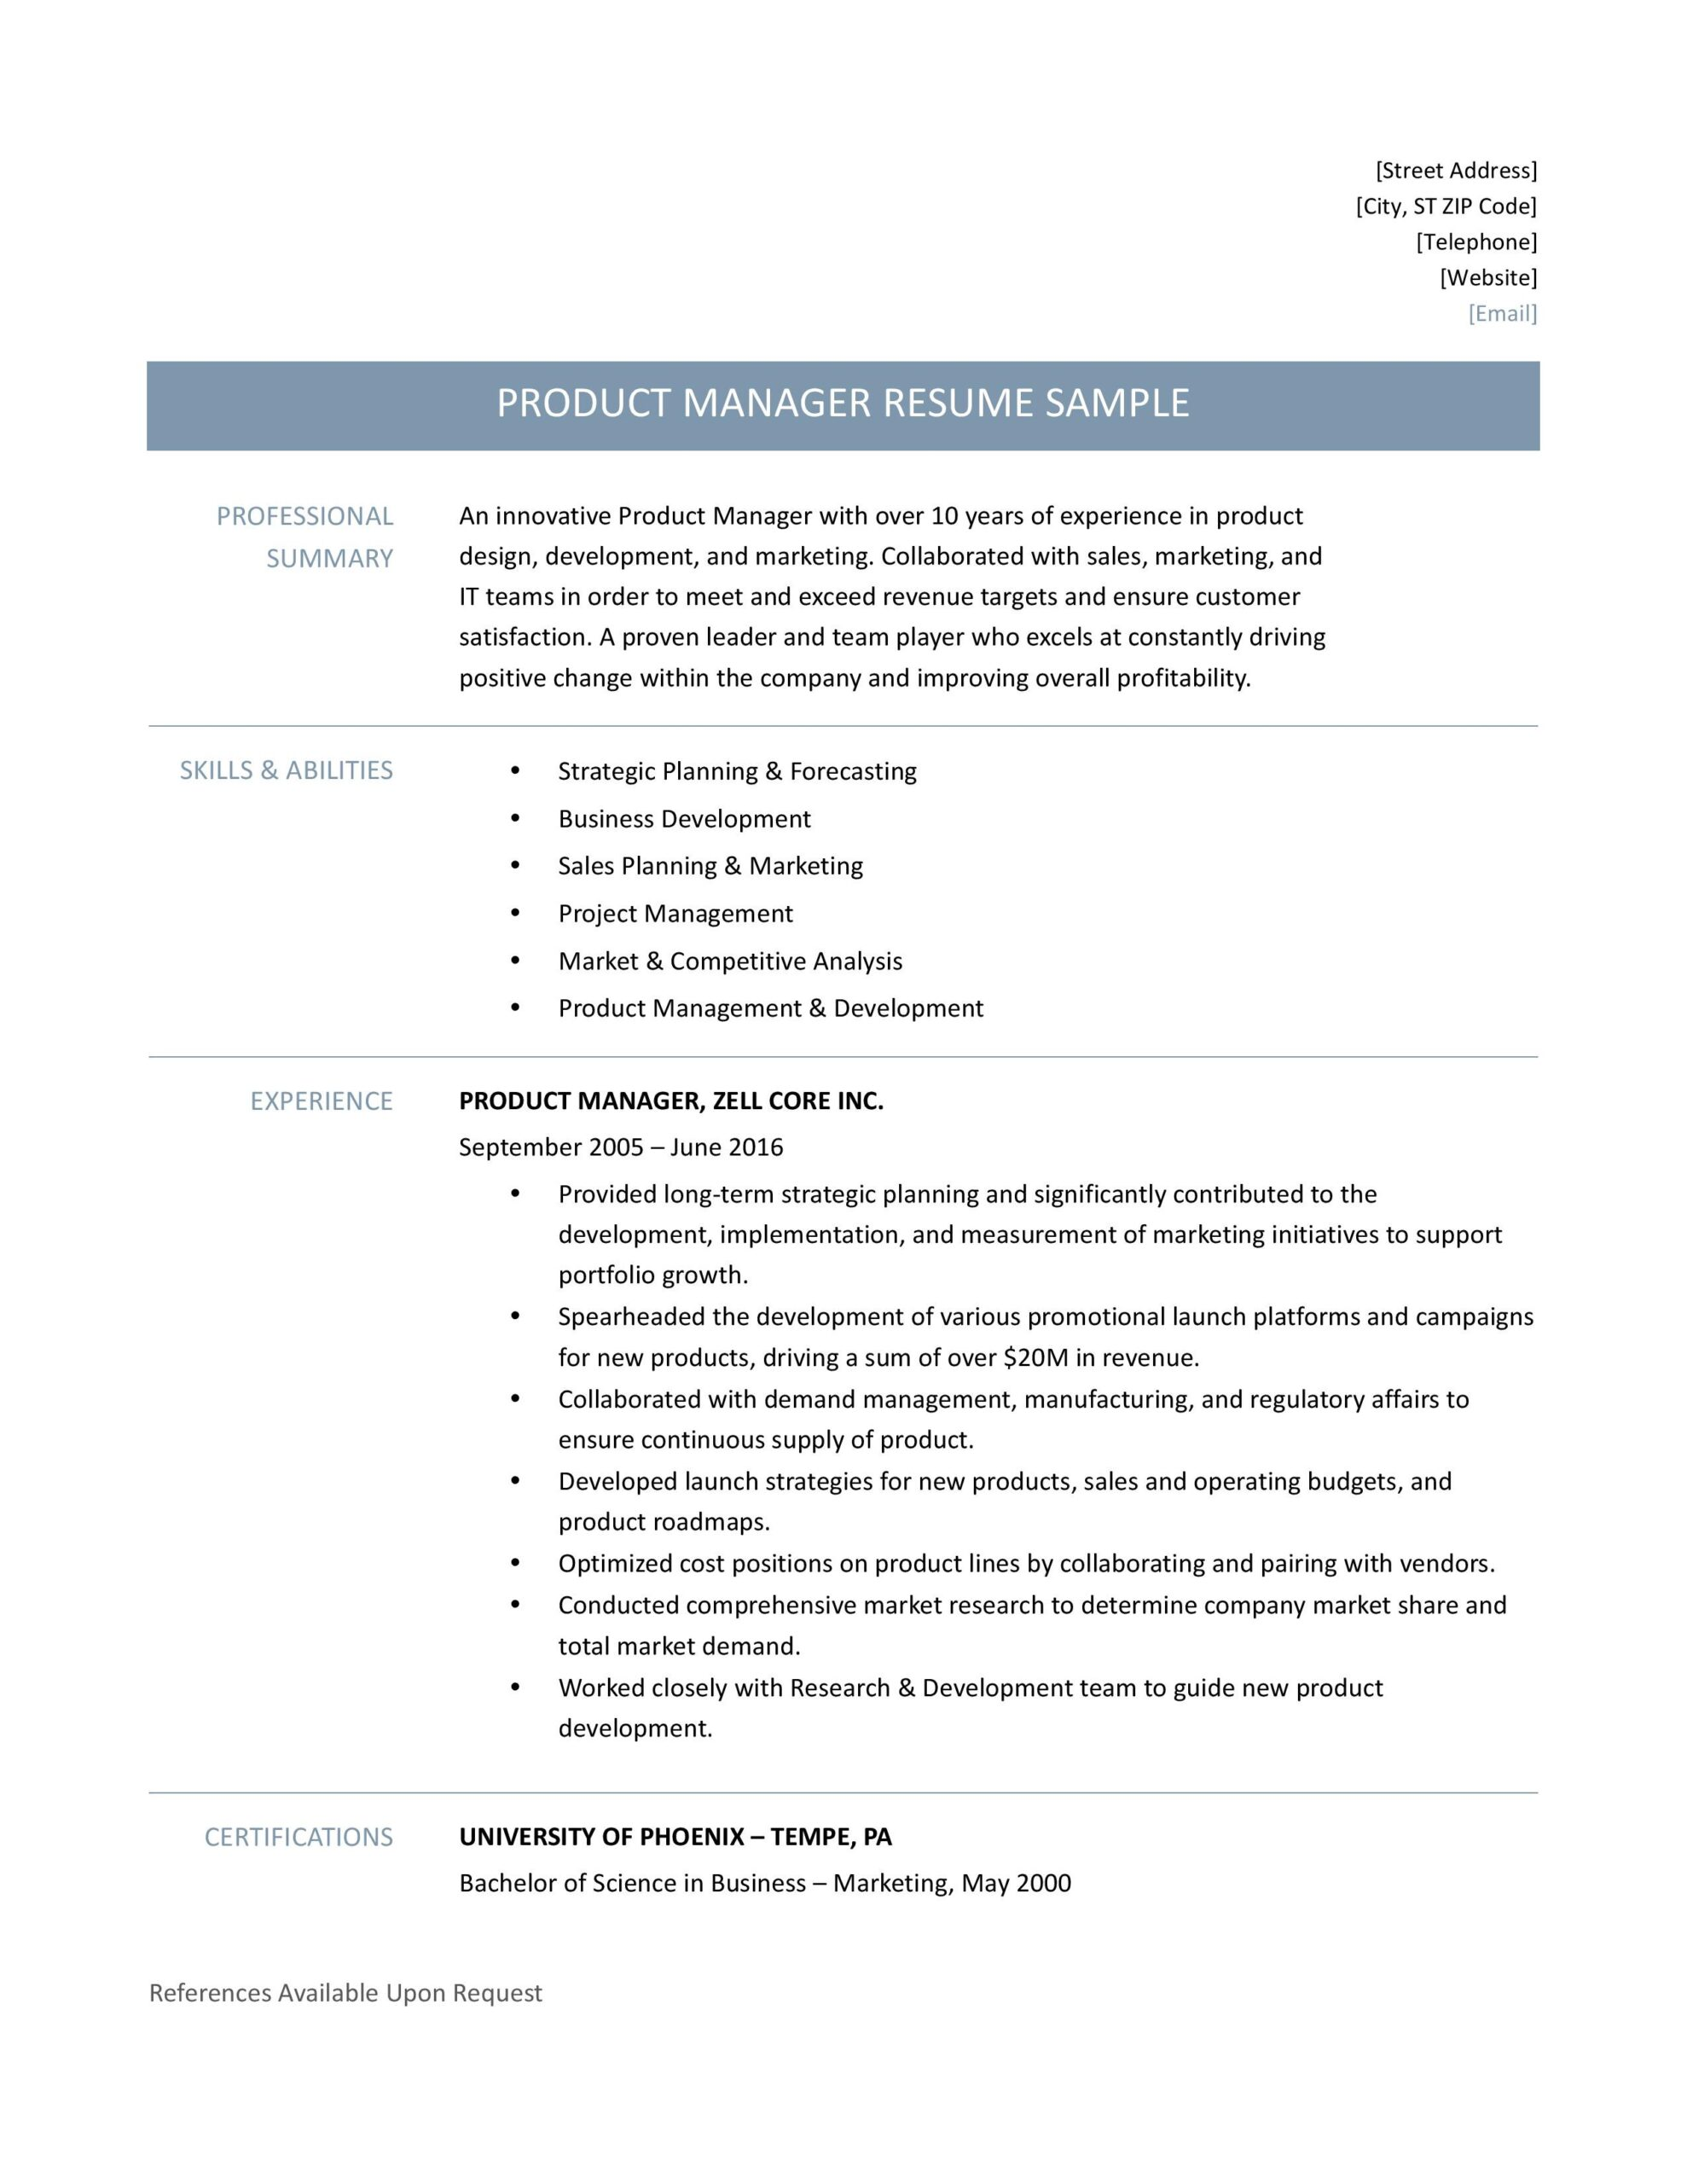 product manager resume samples template and job description by builders medium Resume Product Manager Resume Template